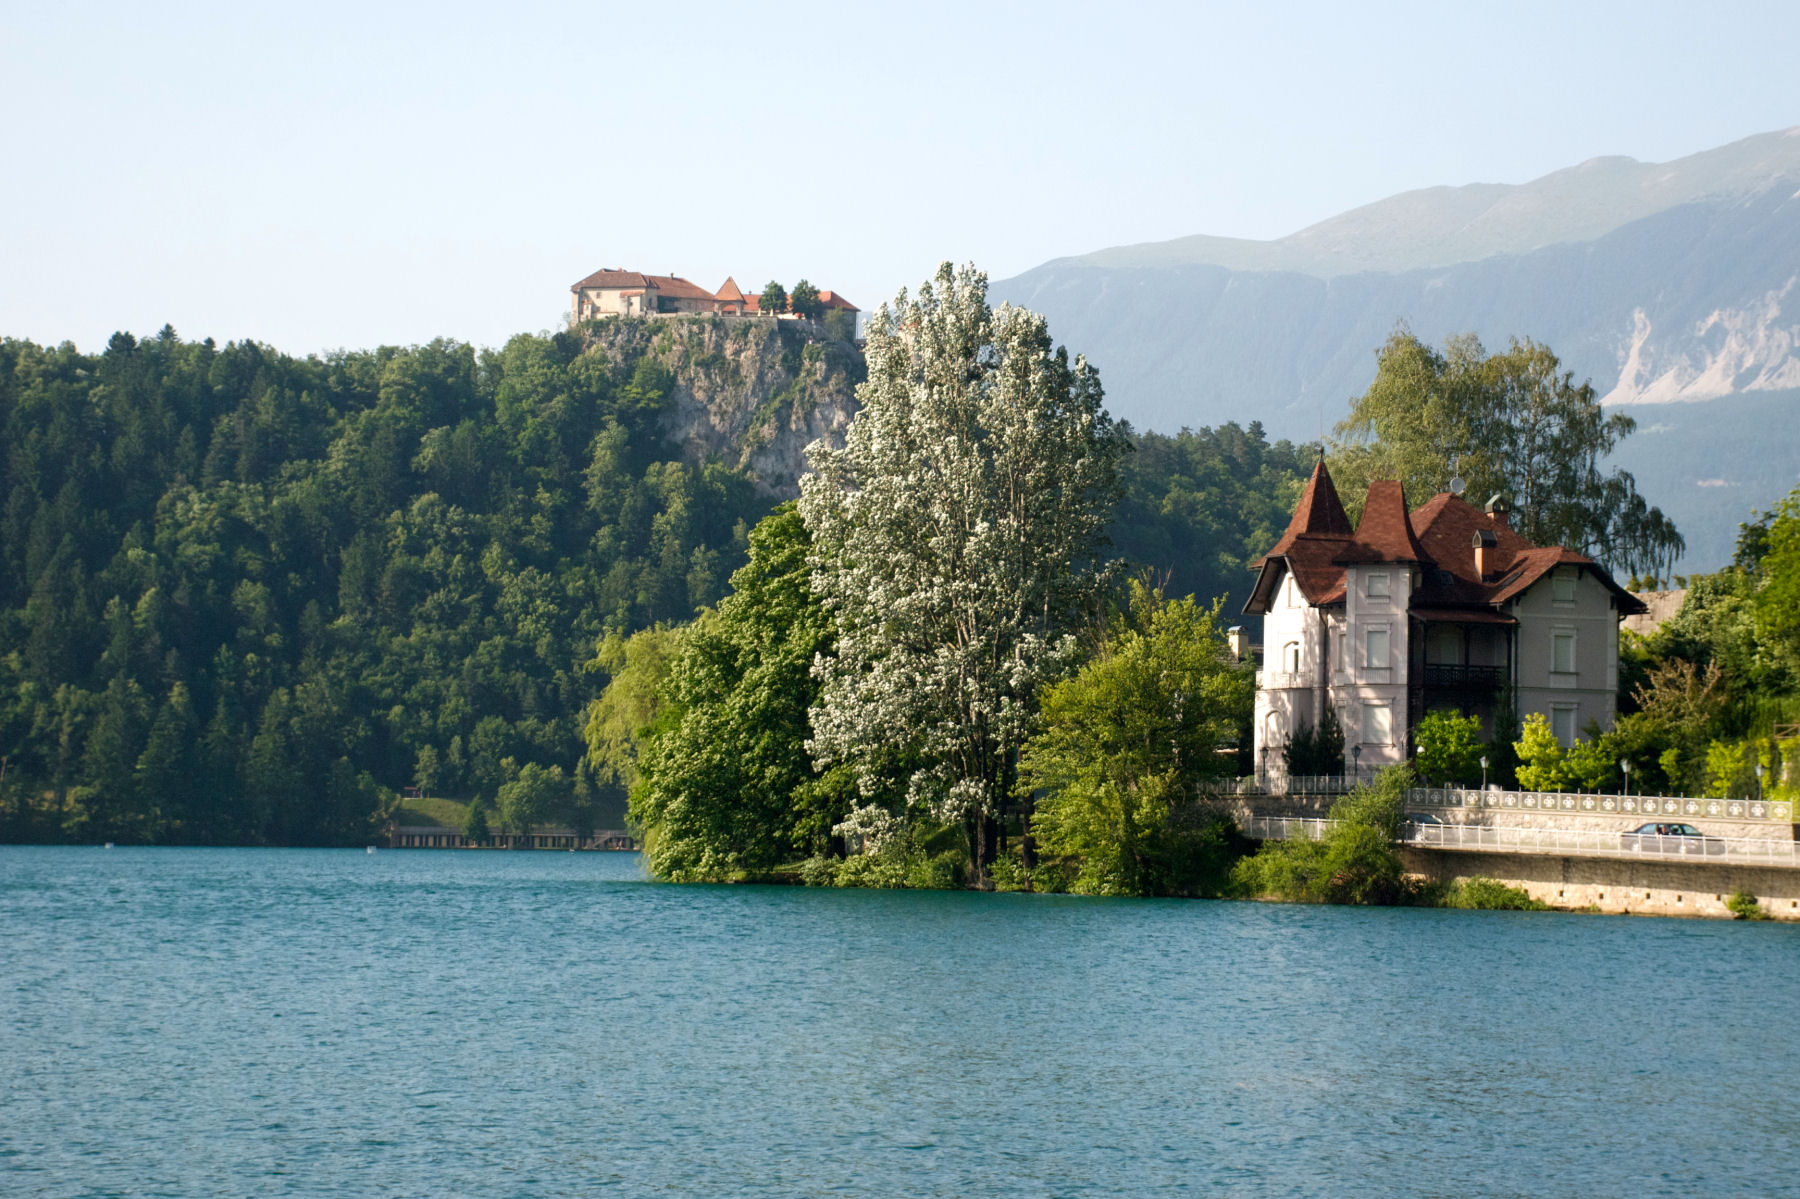 The Bled castle on top of a cliff above the lake